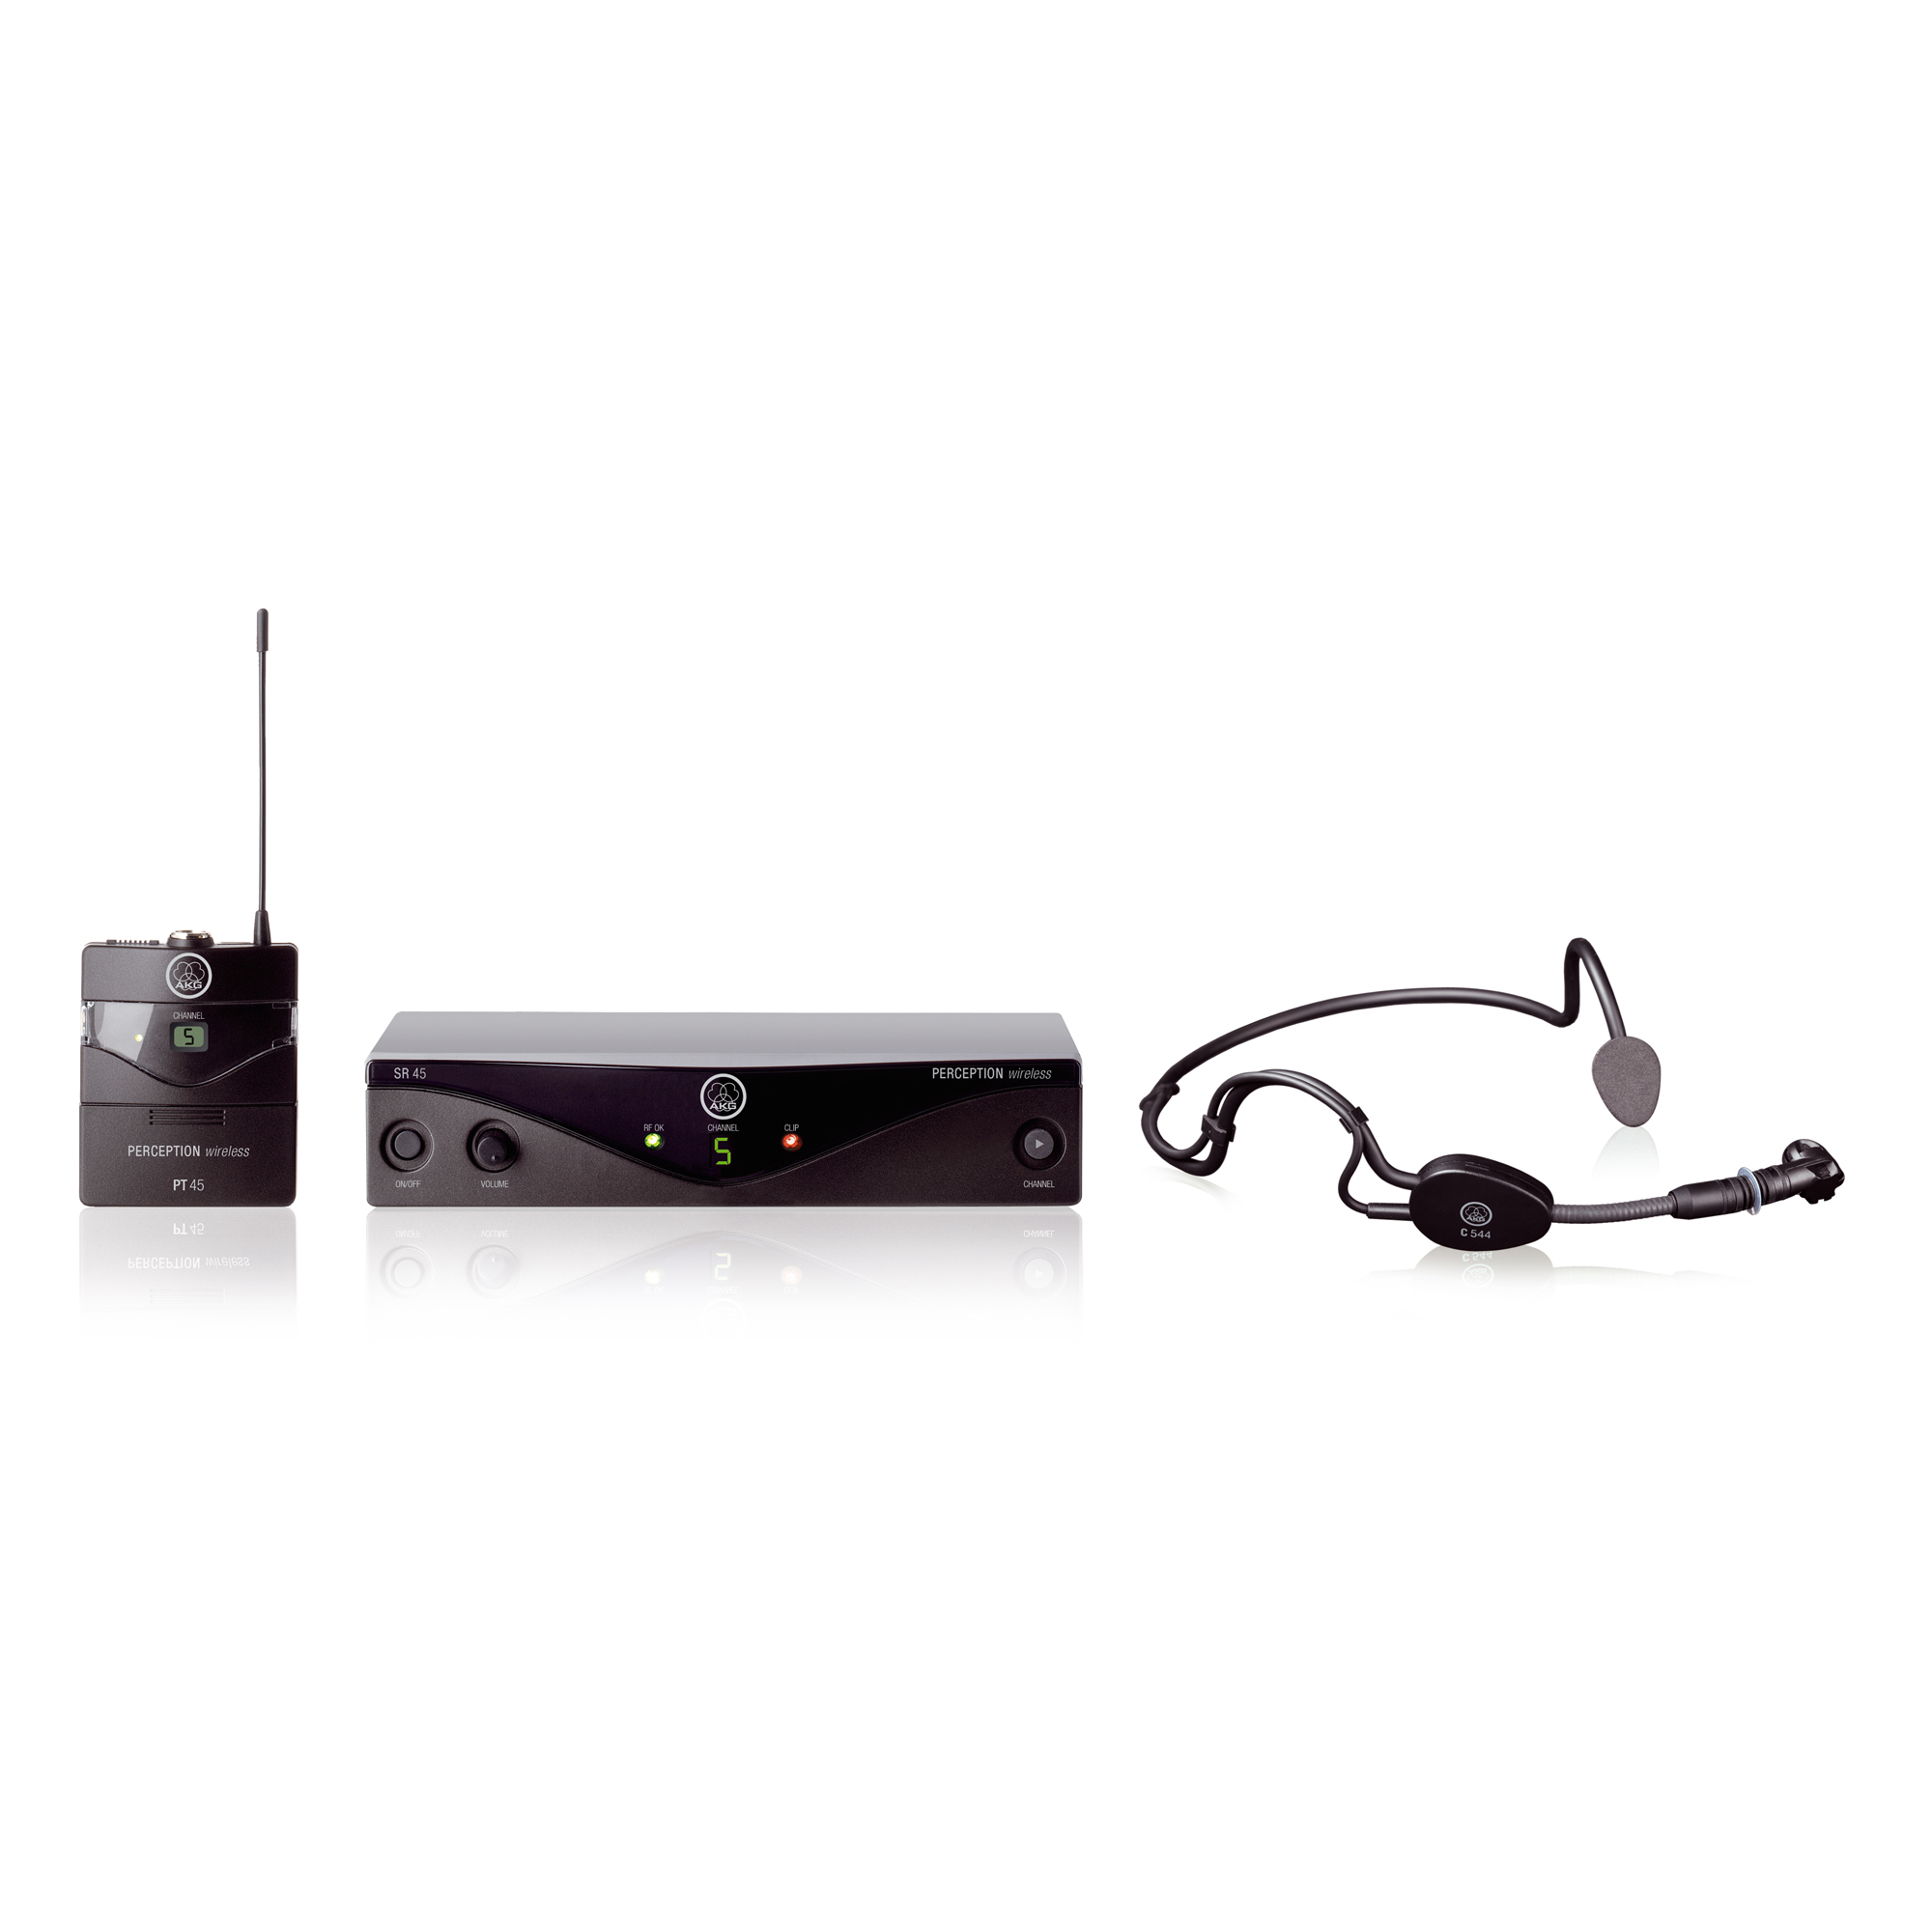 High-performance wireless microphone system